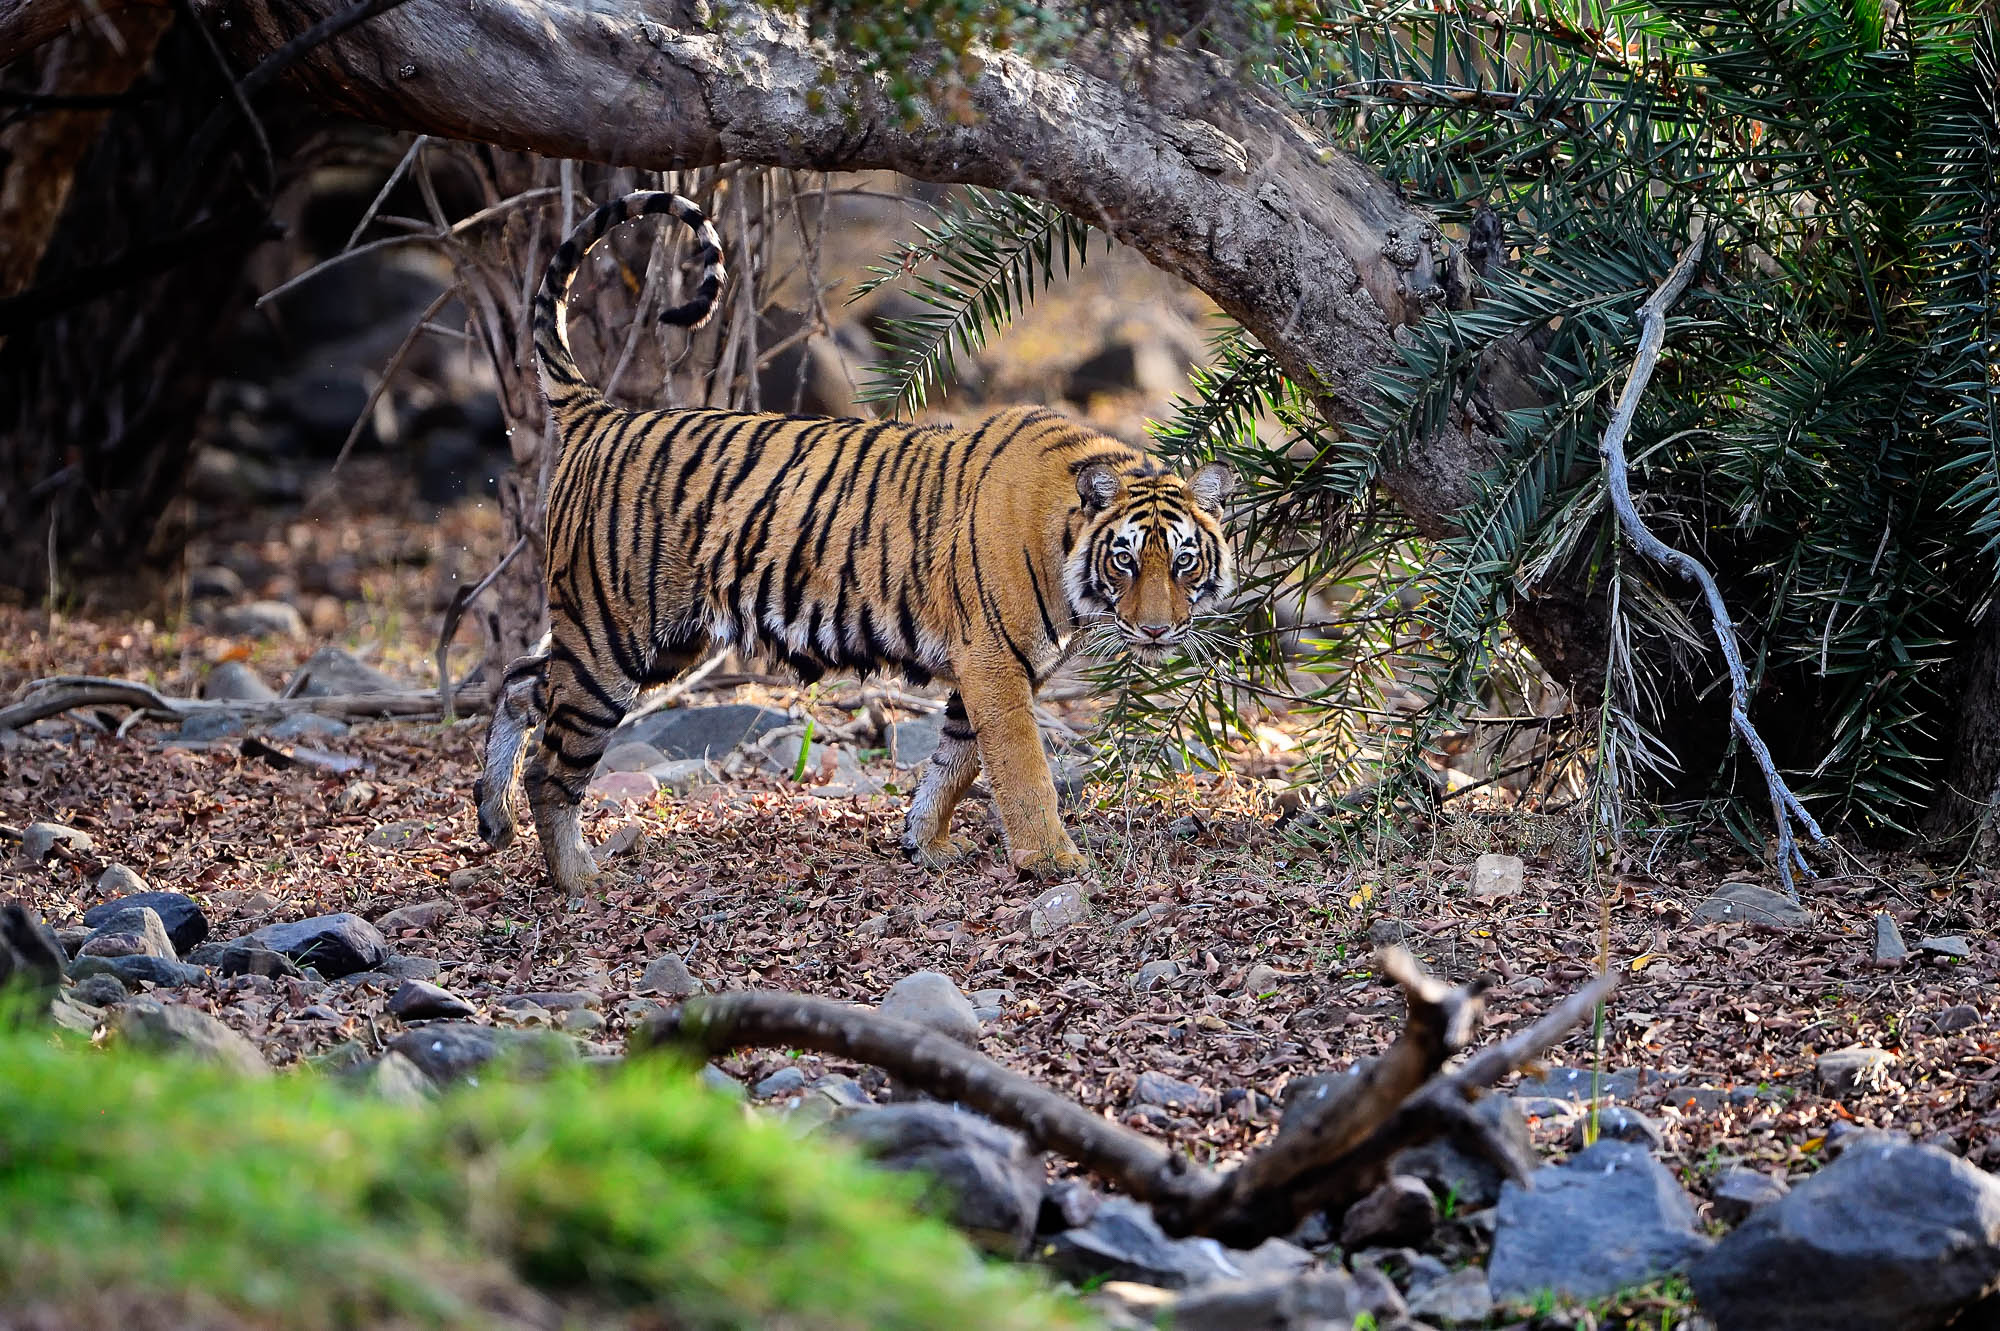 Tiger Ranthambore - Tigers Photography Tour